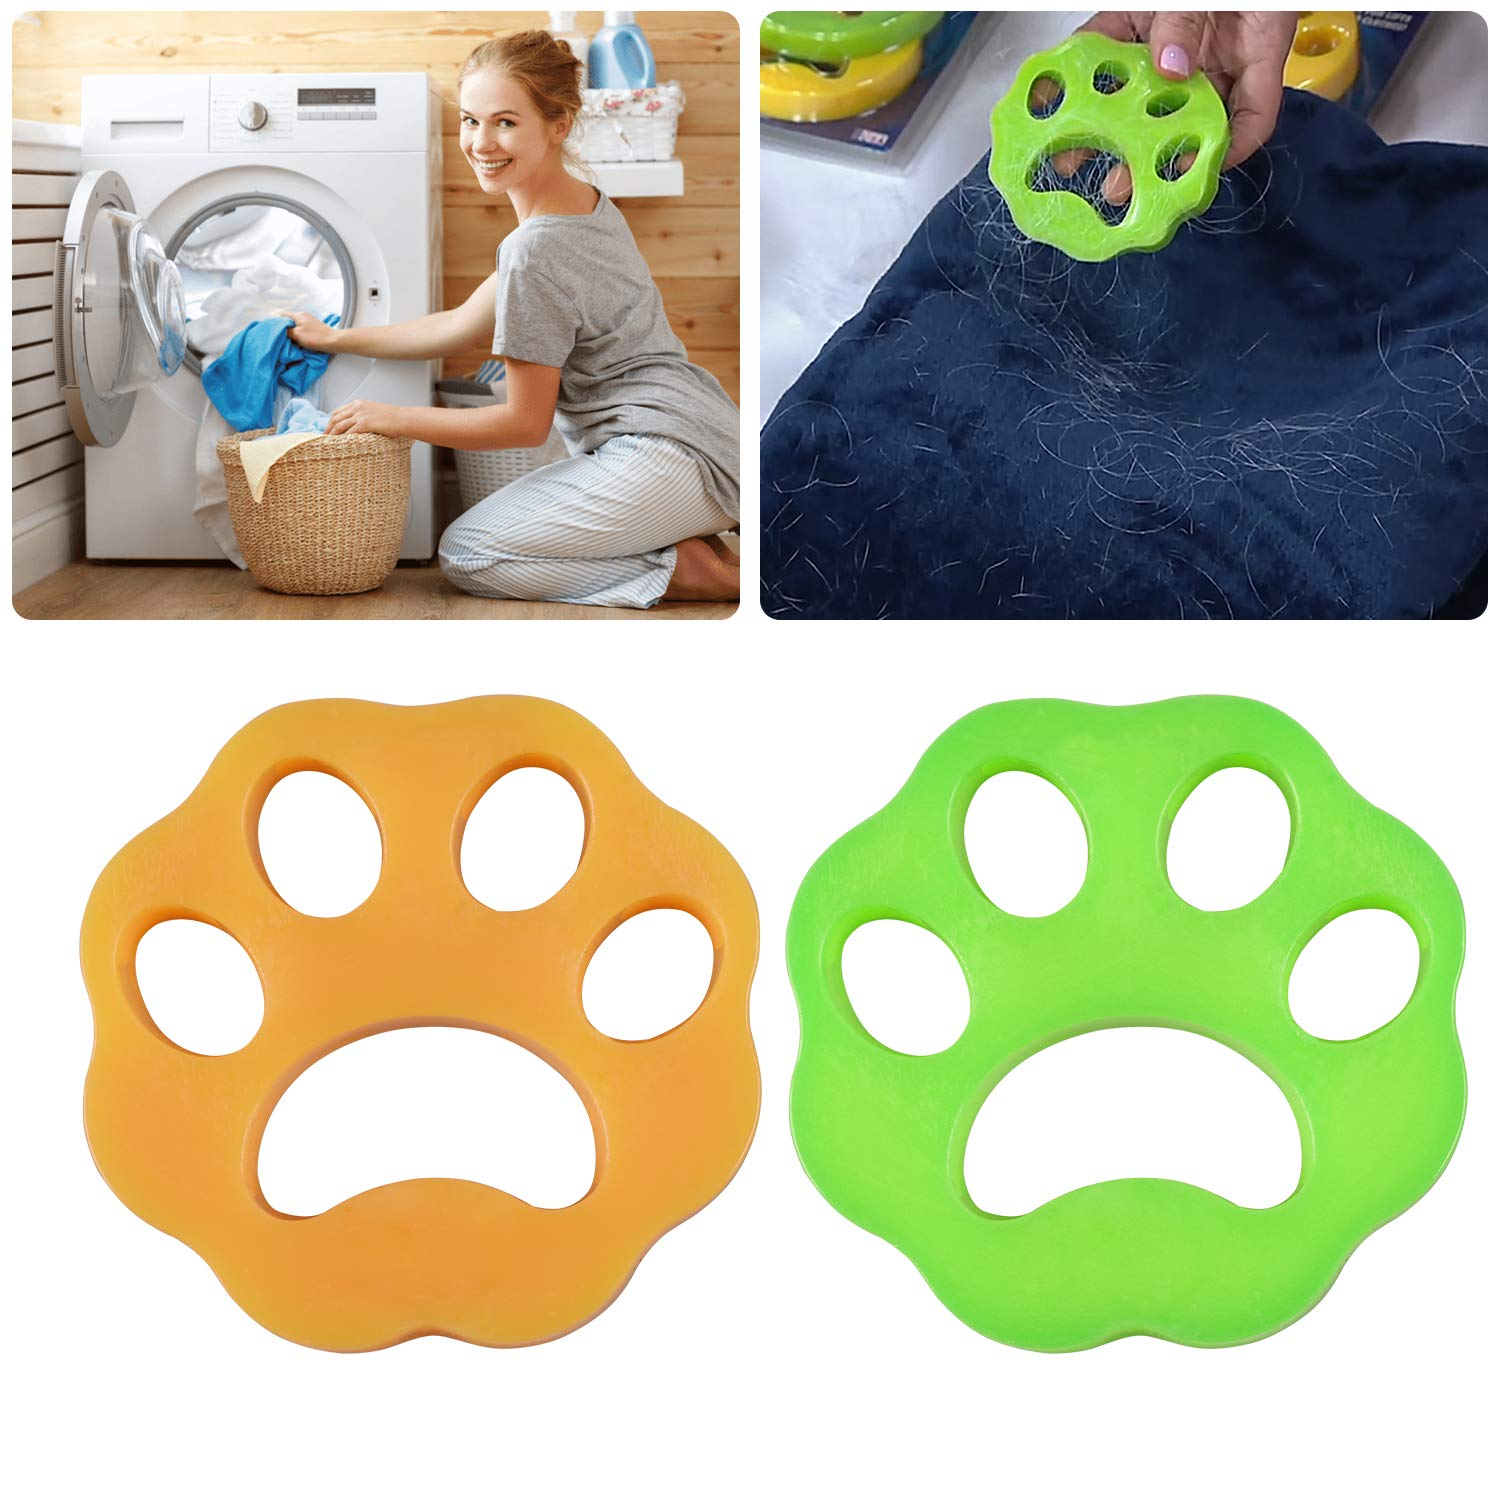 Pet Hair Remover for Laundry - LEADTEAM Non-Toxic Reusable with Remove Hair from Dogs and Cats on Clothes in The Washing Machine -2 Pcs